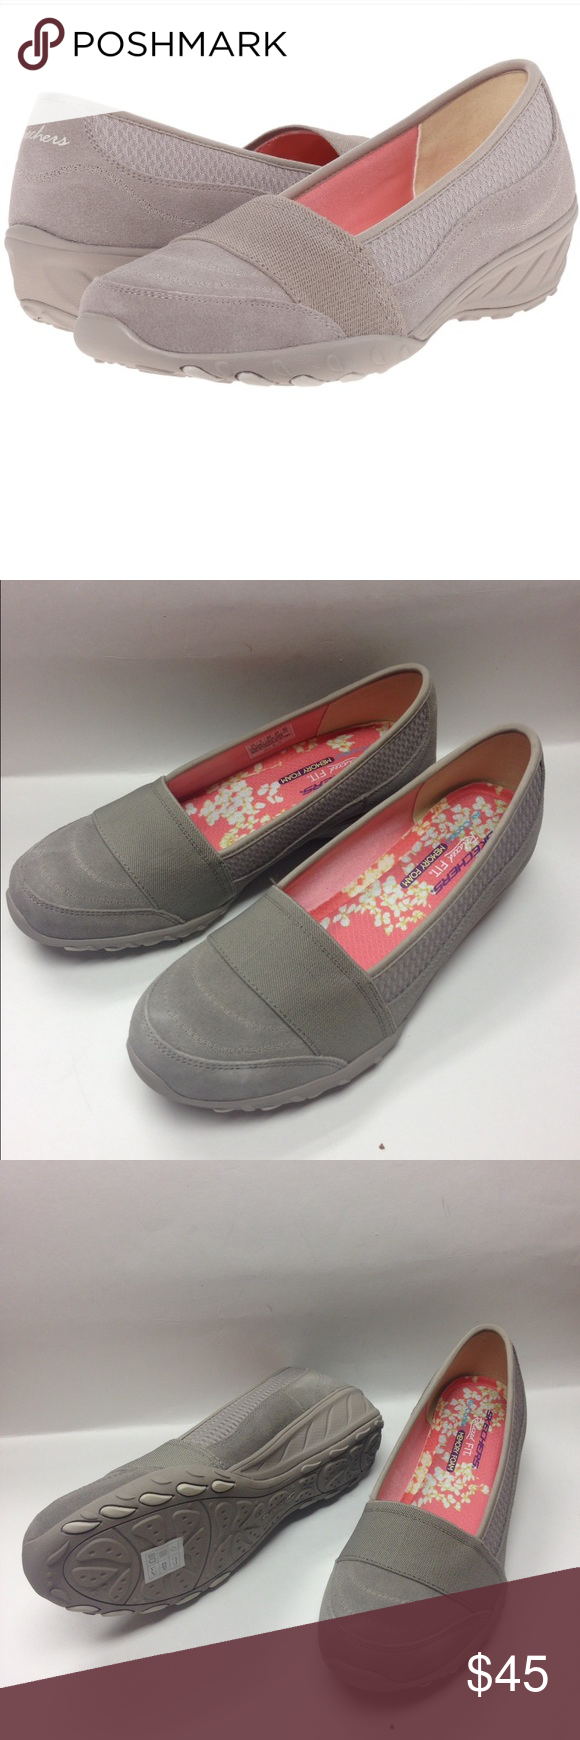 Skechers Savvy- Taupe sneakers